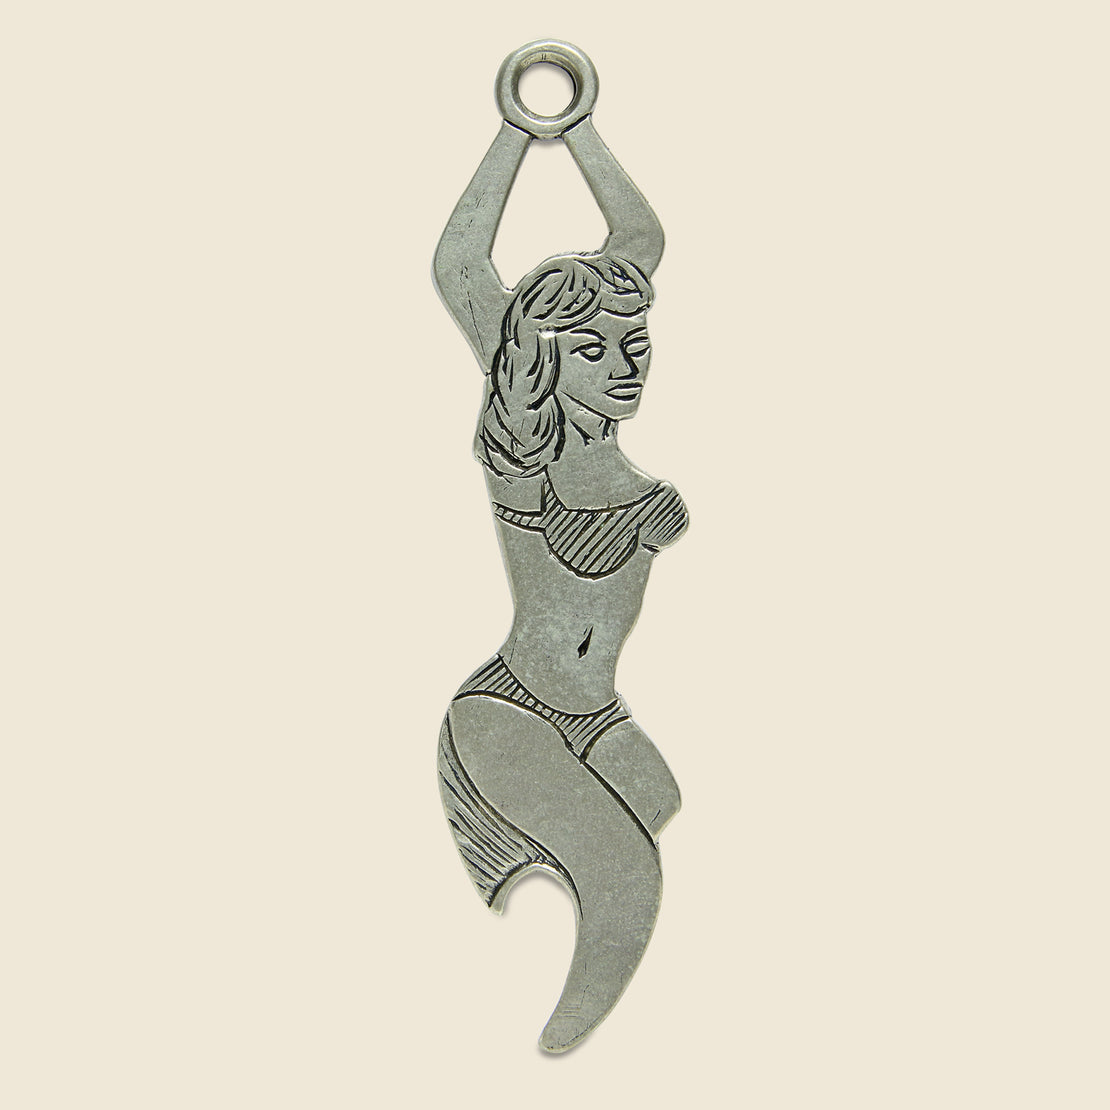 LHN Jewelry Bikini Babe Bottle Opener - Nickel